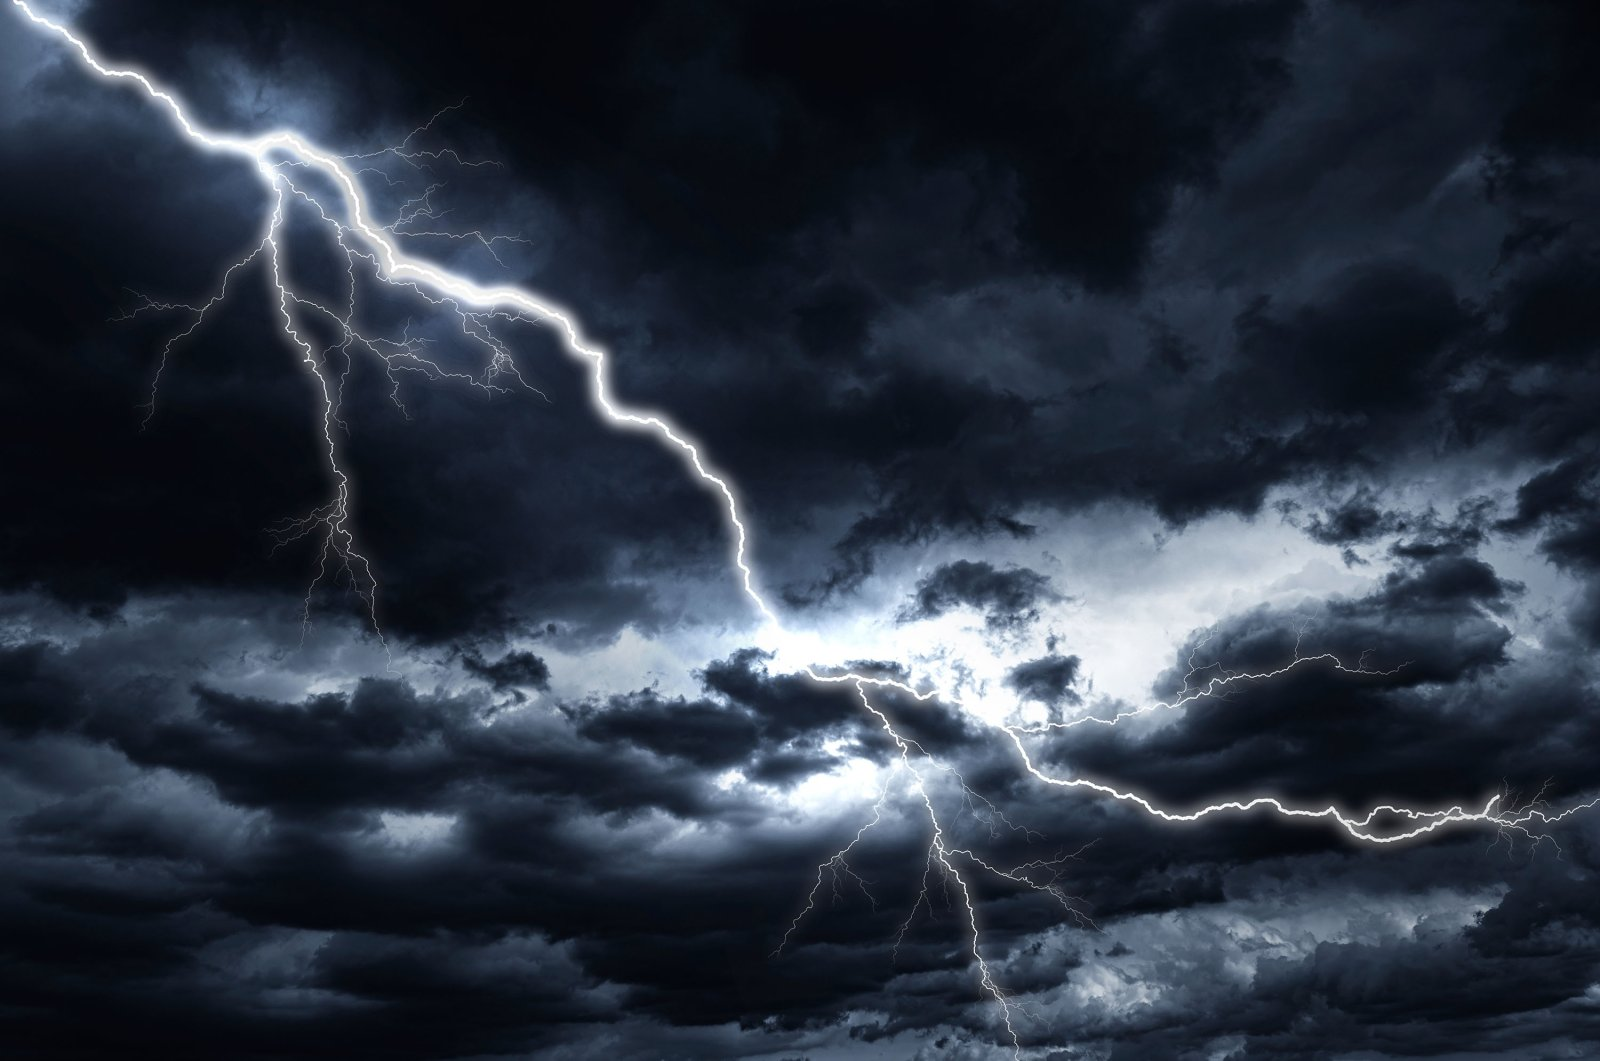 Lightning strike against the background of a cloudy dark sky. (Shutterstock Photo)